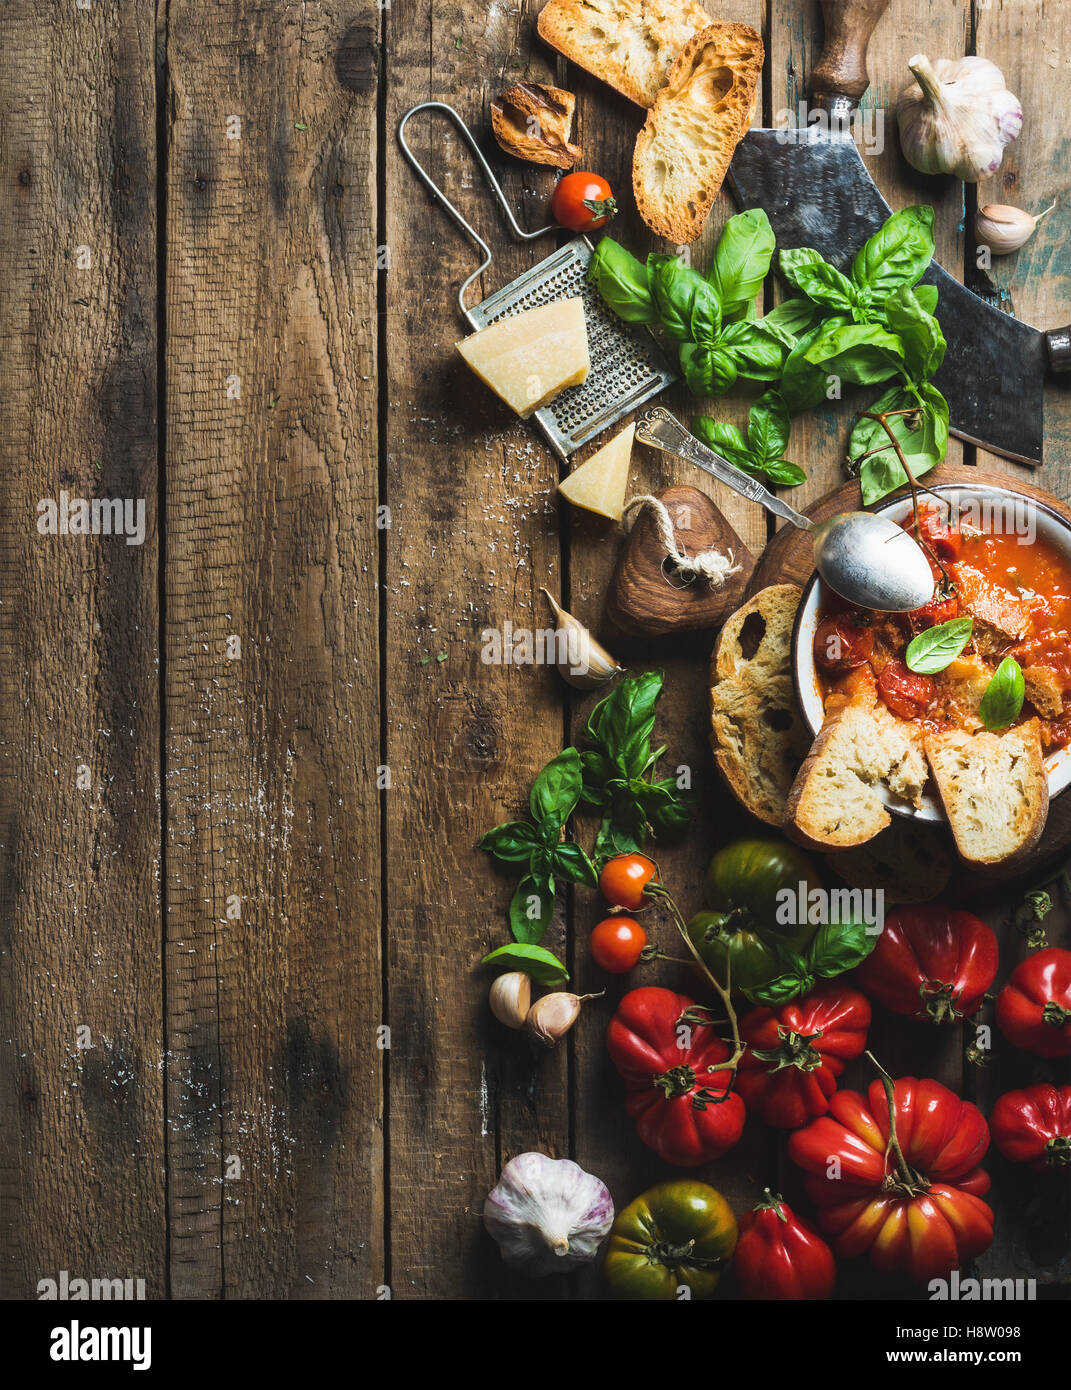 Italian roasted tomato and garlic soup in bowl, copy space - Stock Image